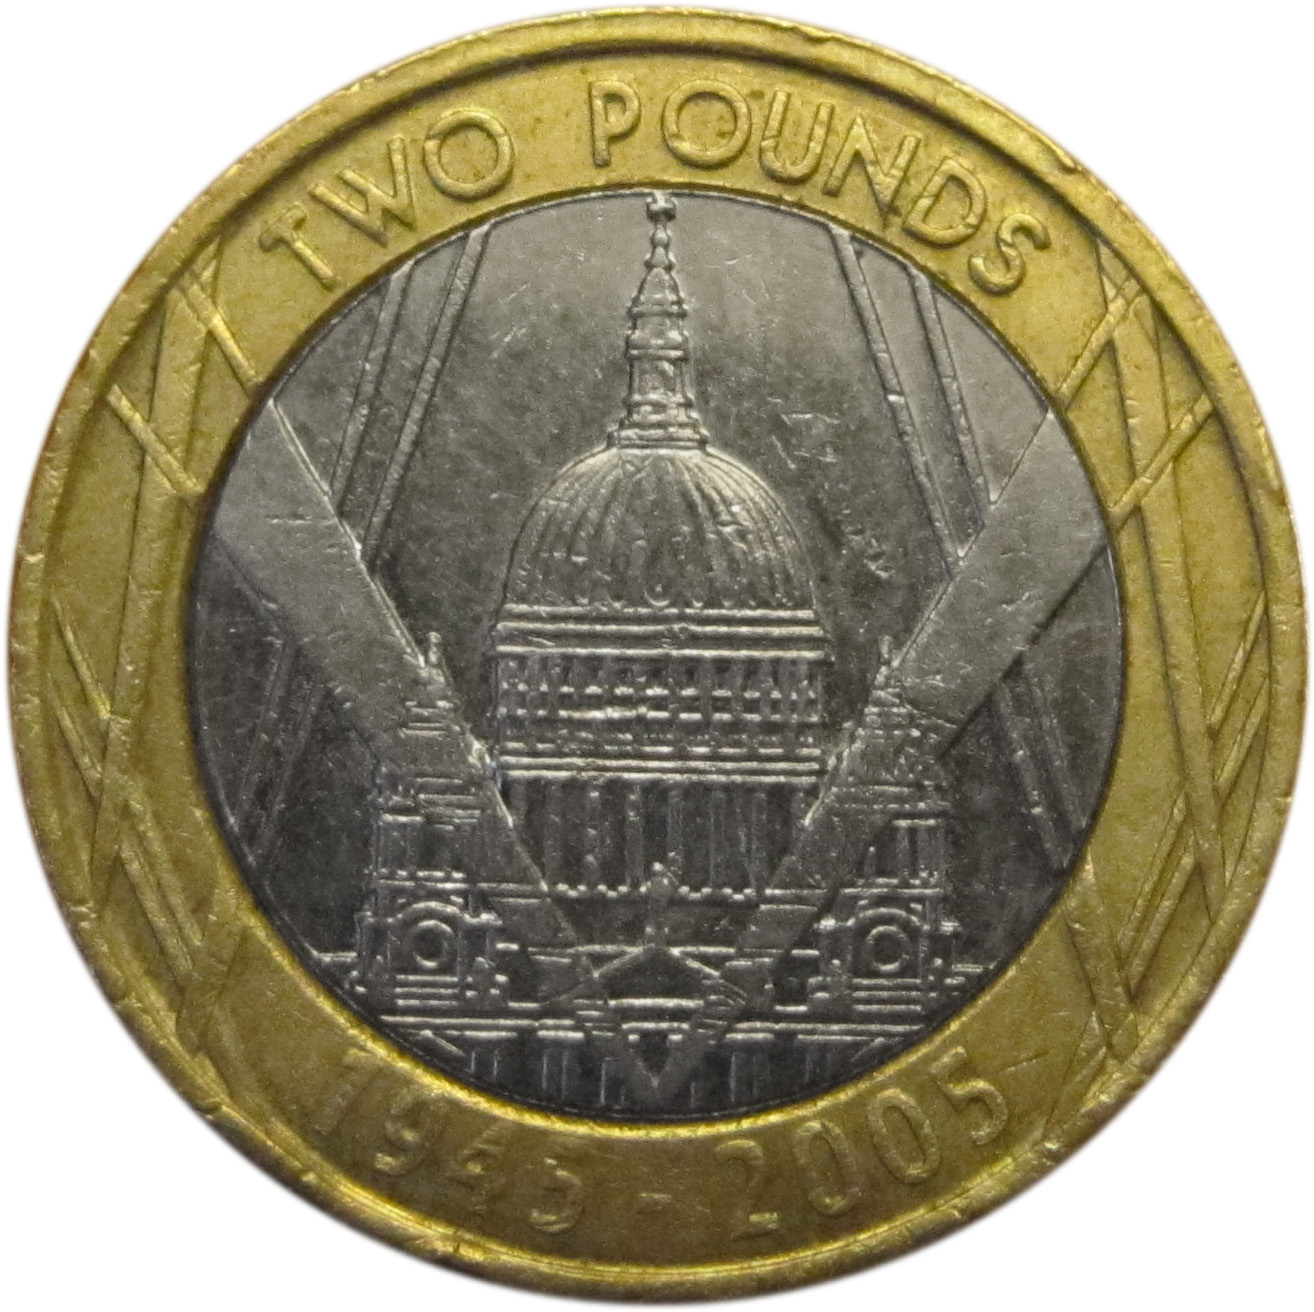 2015 Two Pounds | Check Your Change